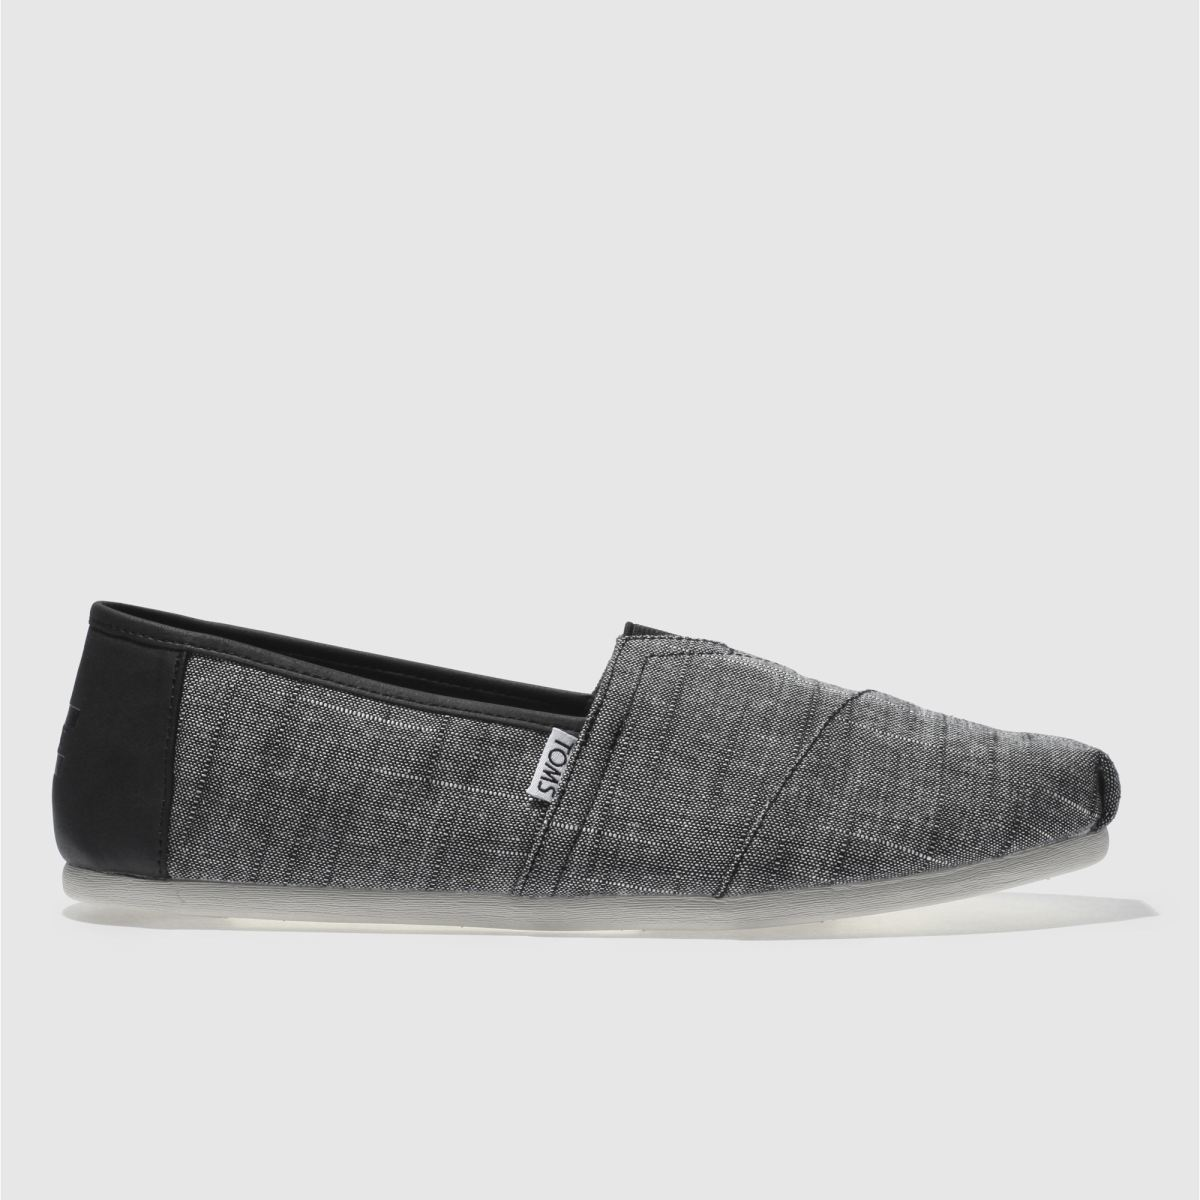 Toms Black & Grey Classic Shoes